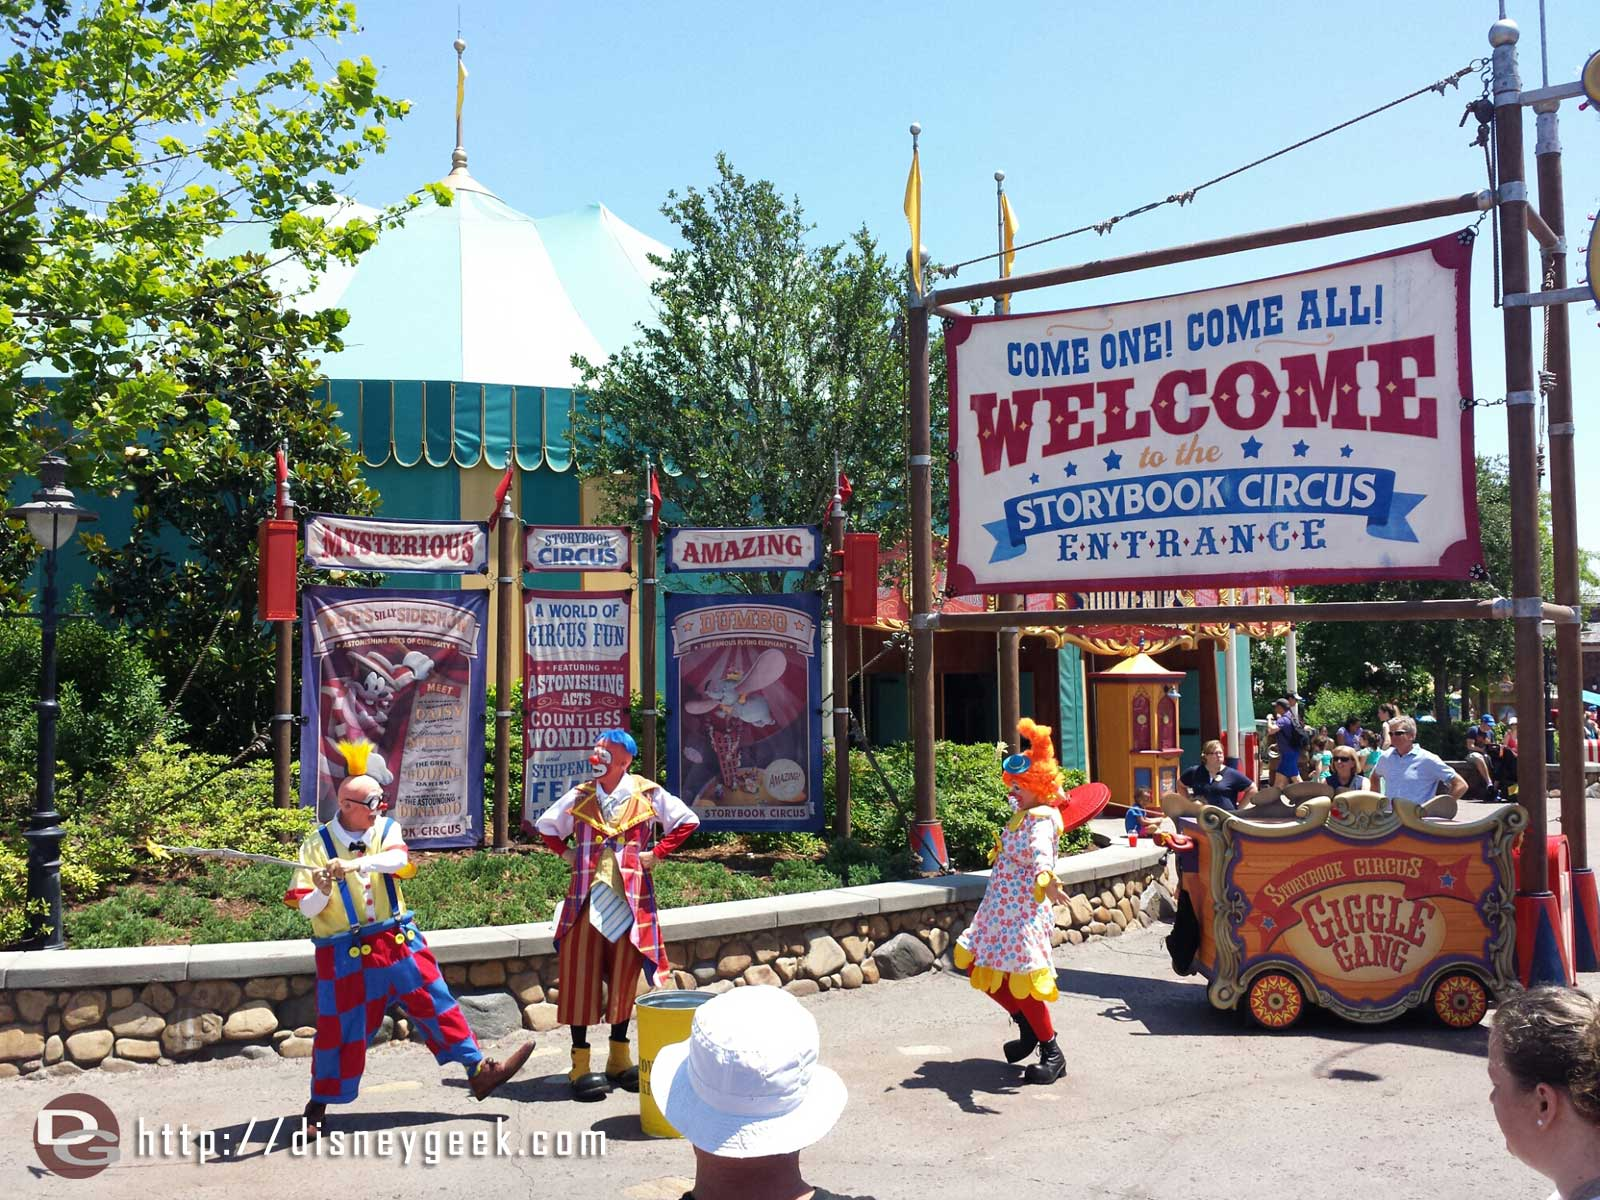 The Giggle Gang in front of Storybook Circus